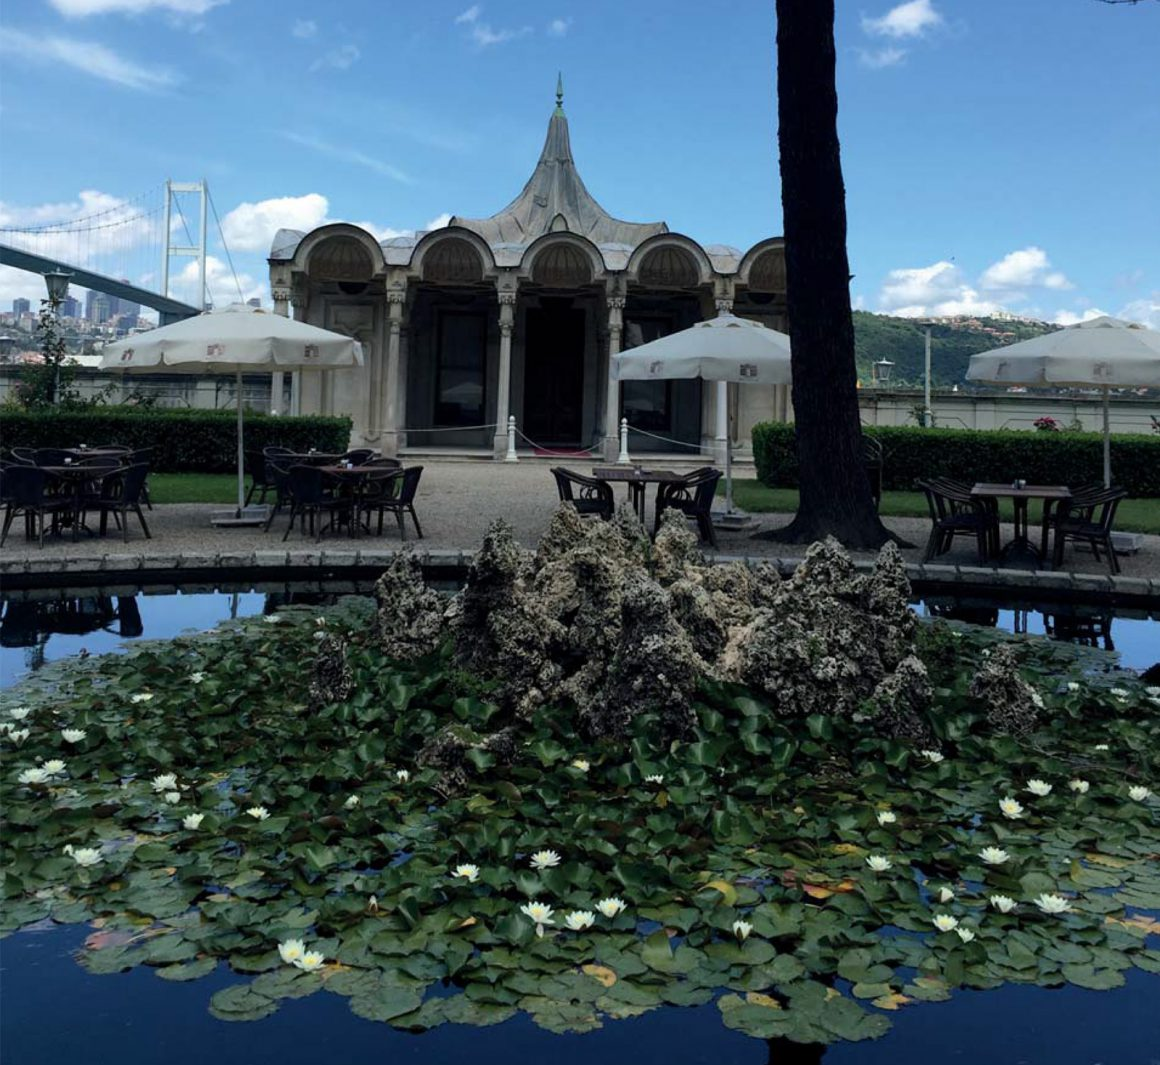 LOTUS EVENT ISTANBUL – GLOBAL EVENT AND MEETING ORGANIZER